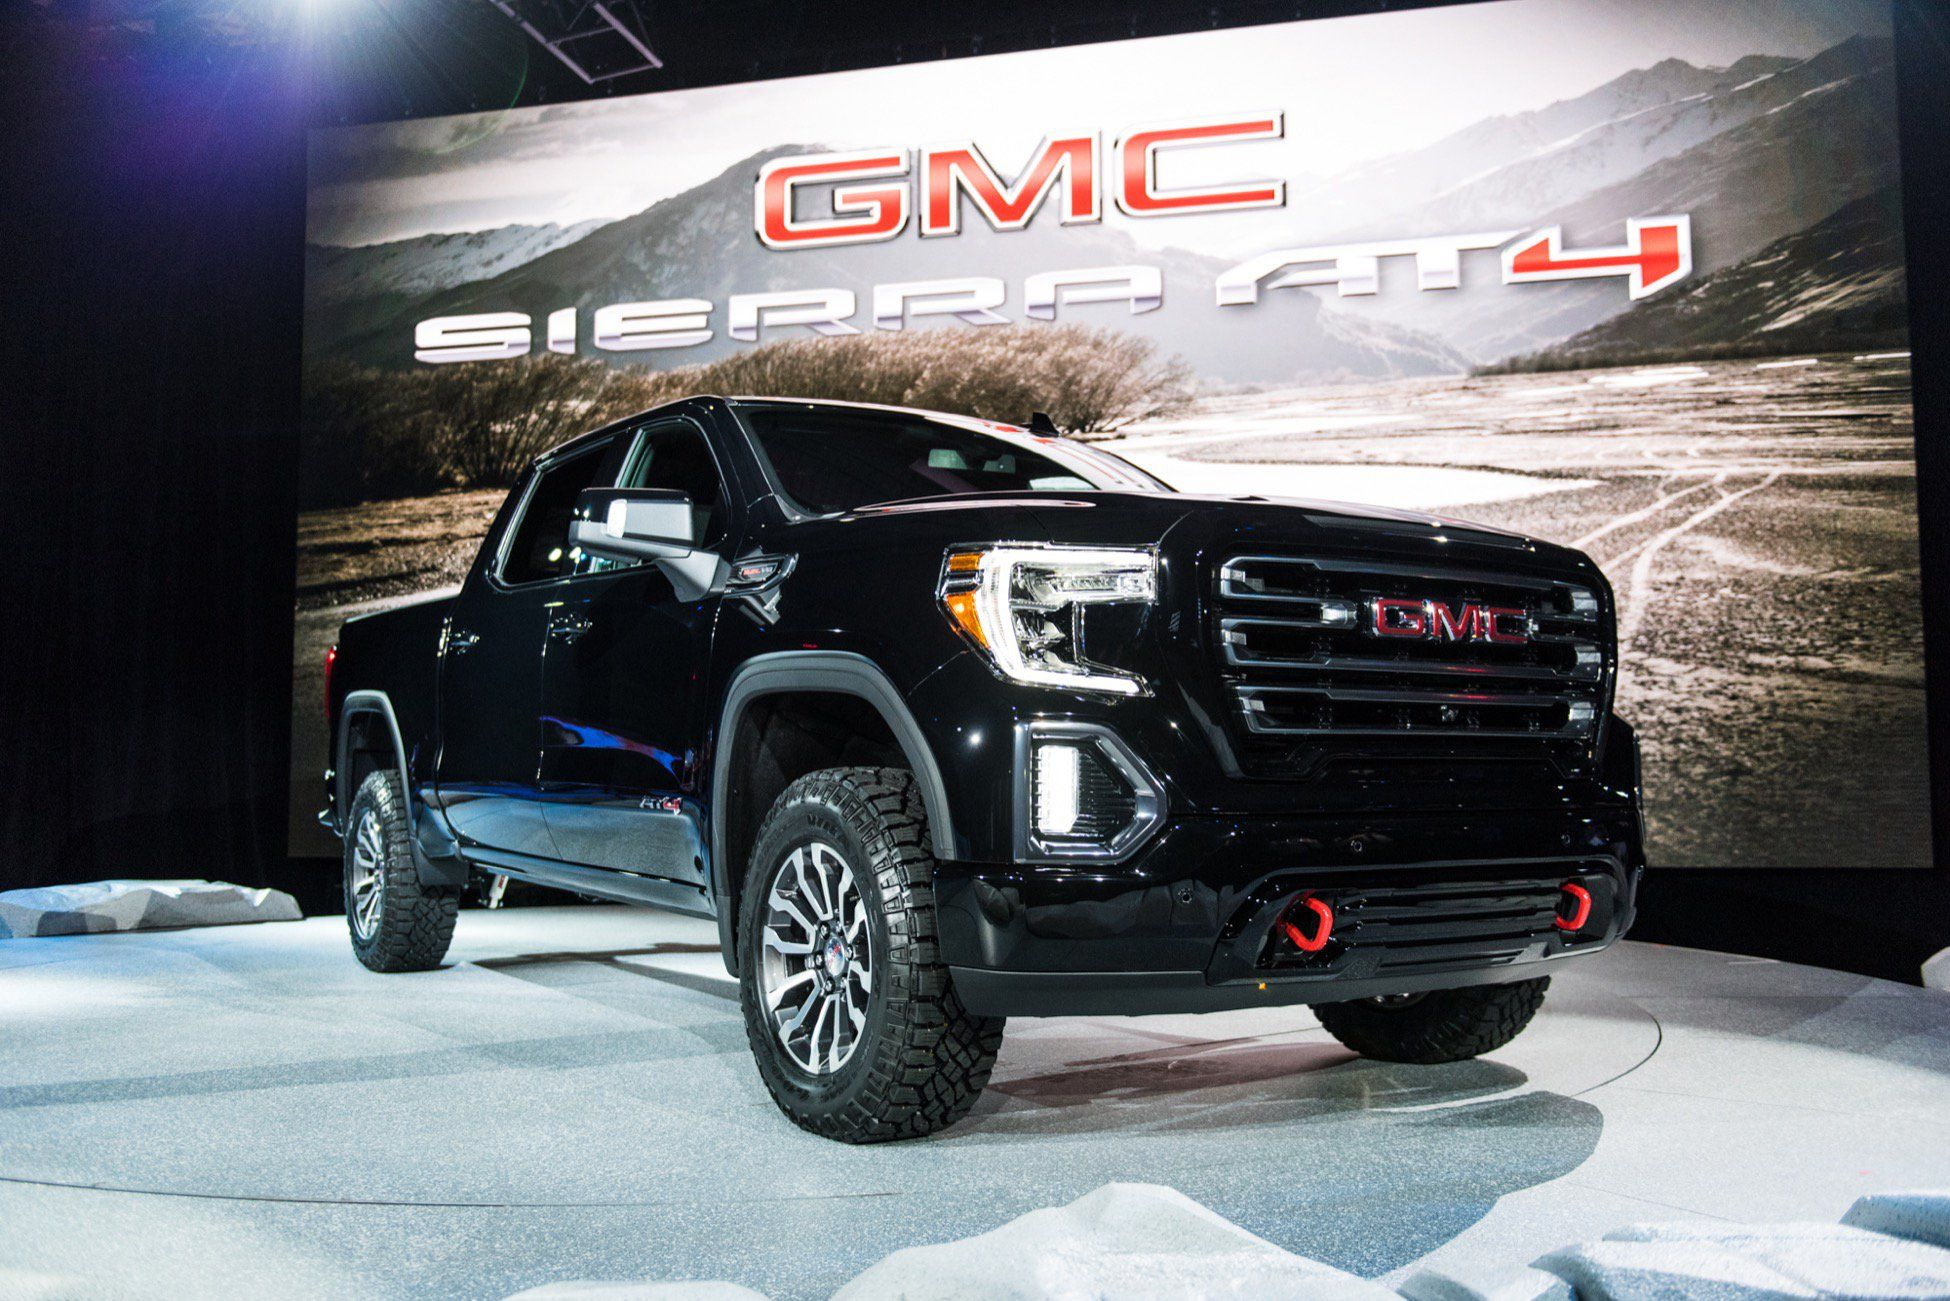 2019 Gmc Sierra 1500 Carbonpro Toolbox Test Gm Authority